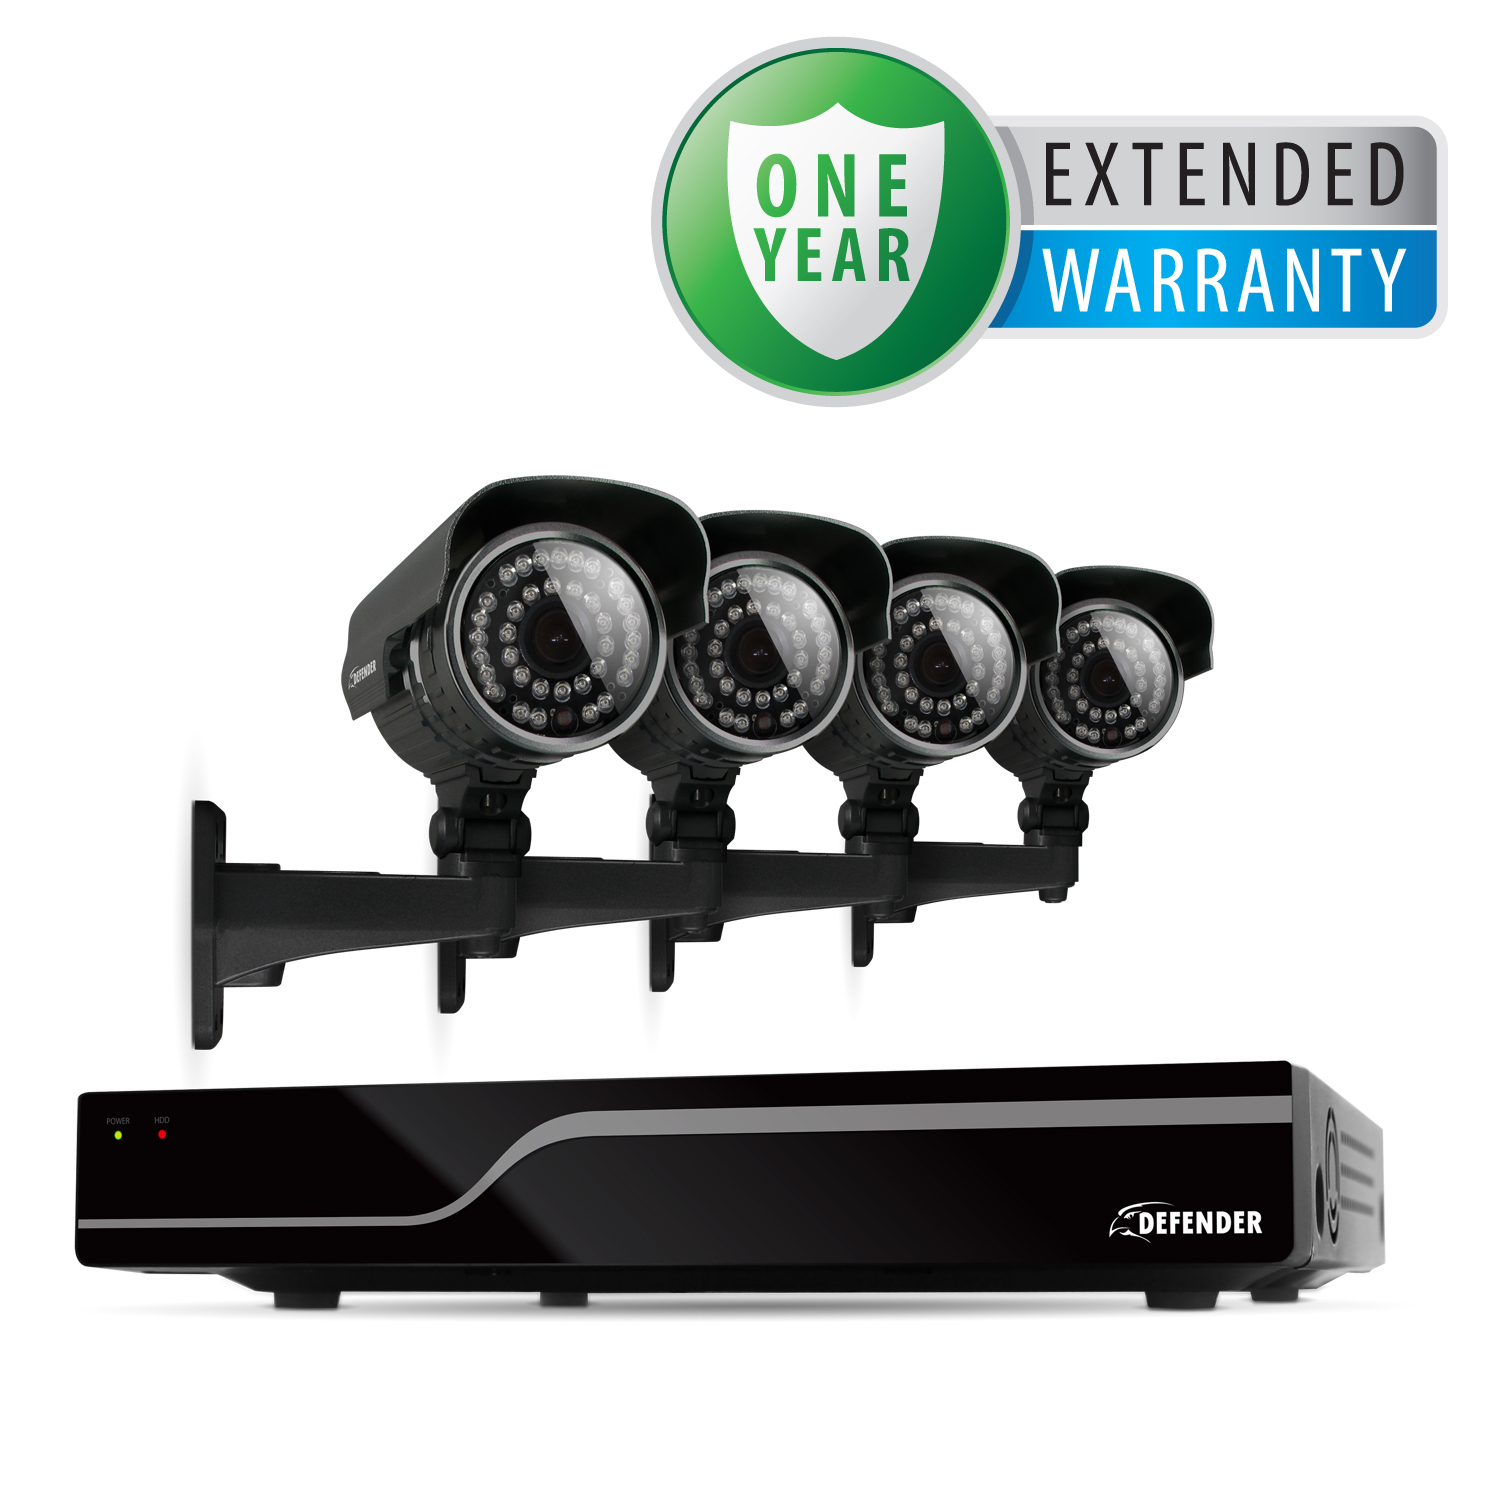 Defender 4CH H.265 500GB Security DVR w/ 4 x 600TVL Cameras & 1 Year Extended Warranty - 21027 at Sears.com